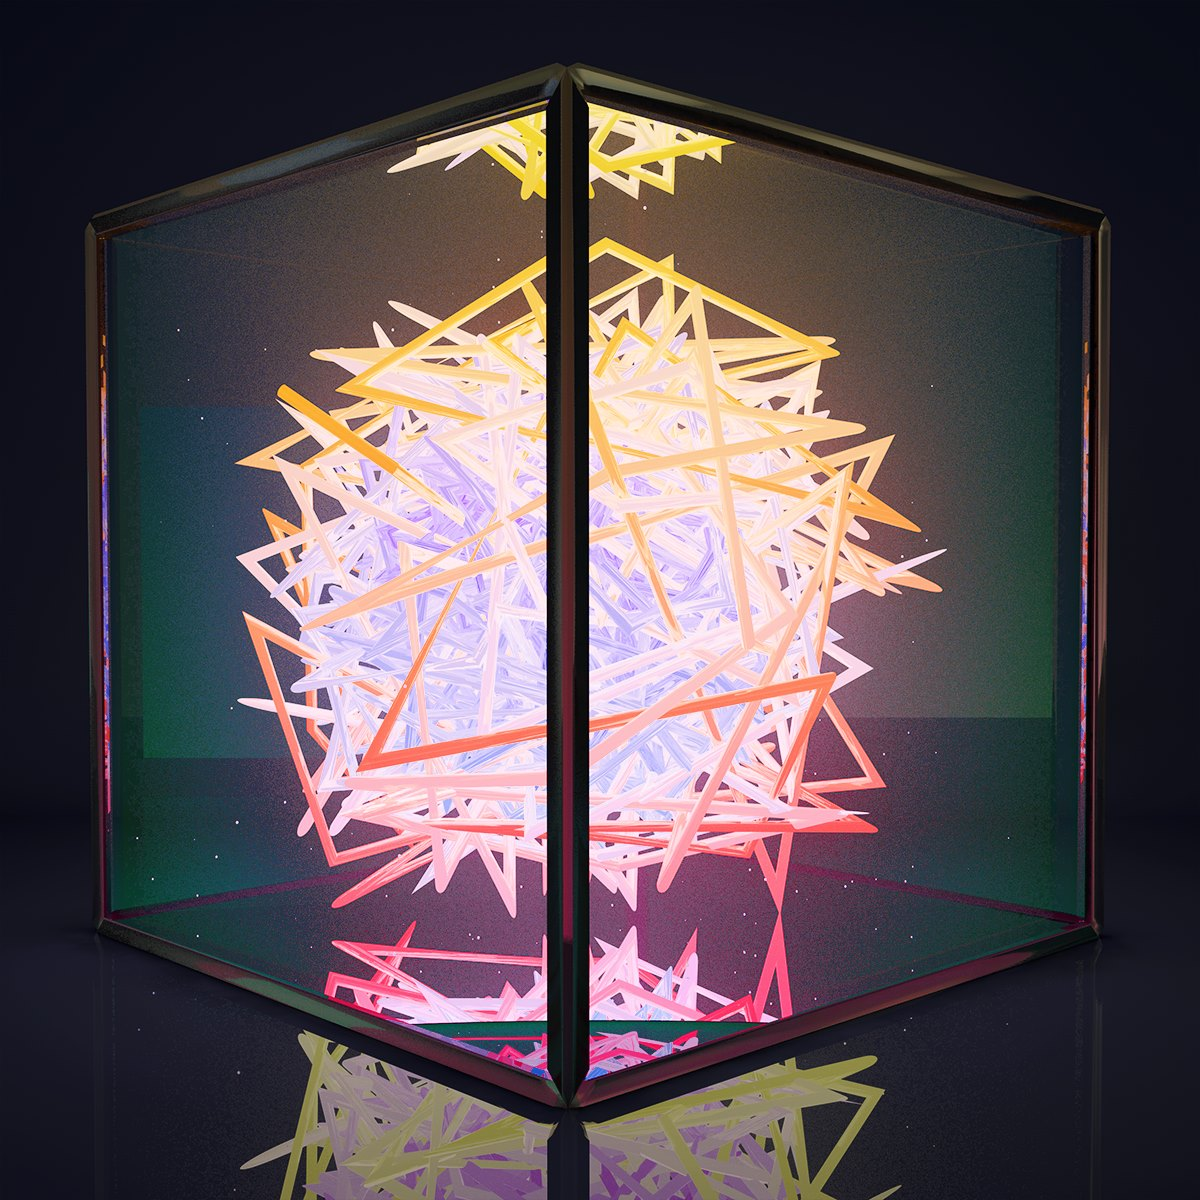 3D render glowing neon chaotic light shape contained in a glass box